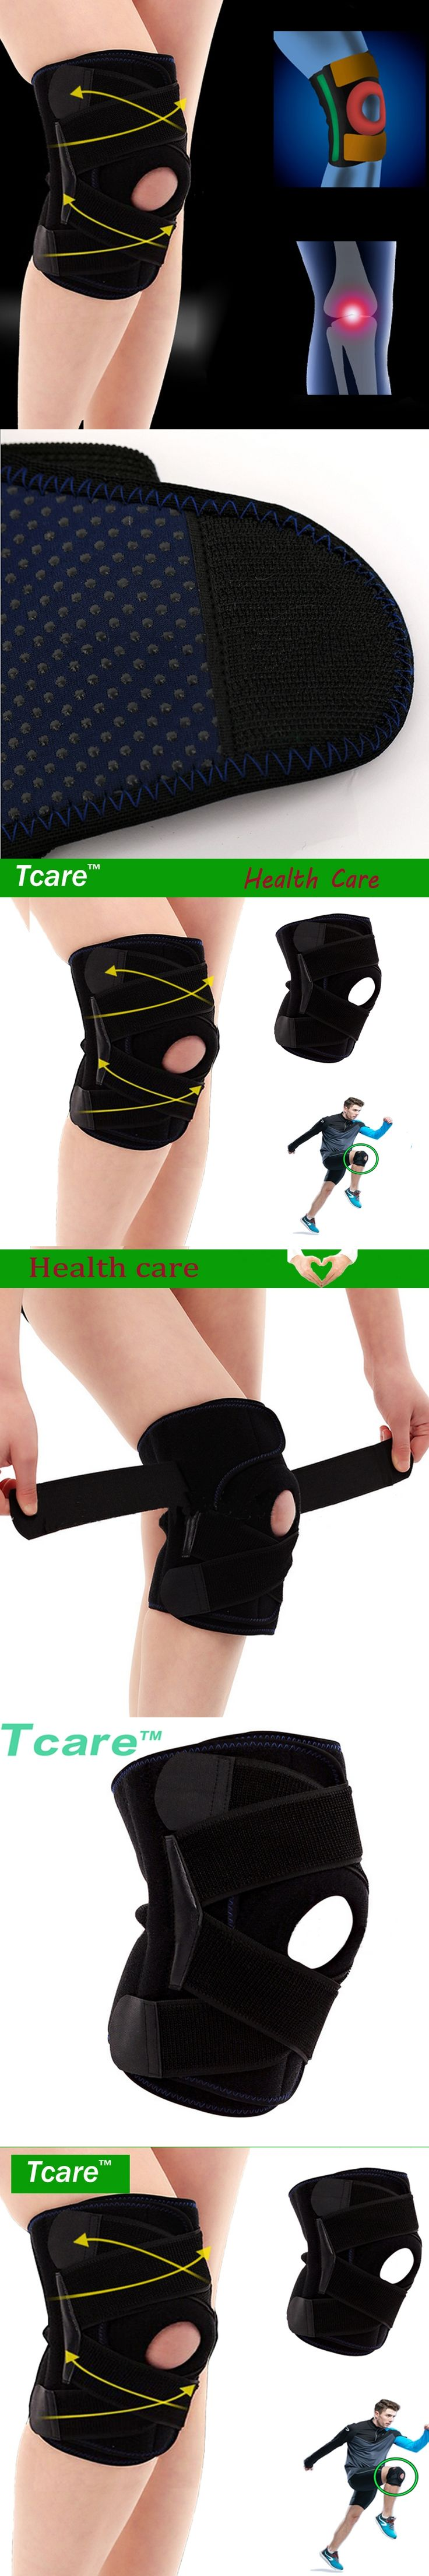 Tcare 1 pair Health Care Self-heating Knee Brace Adjustable Sports Knee Support Protector With Round EVA Silicone Gasket